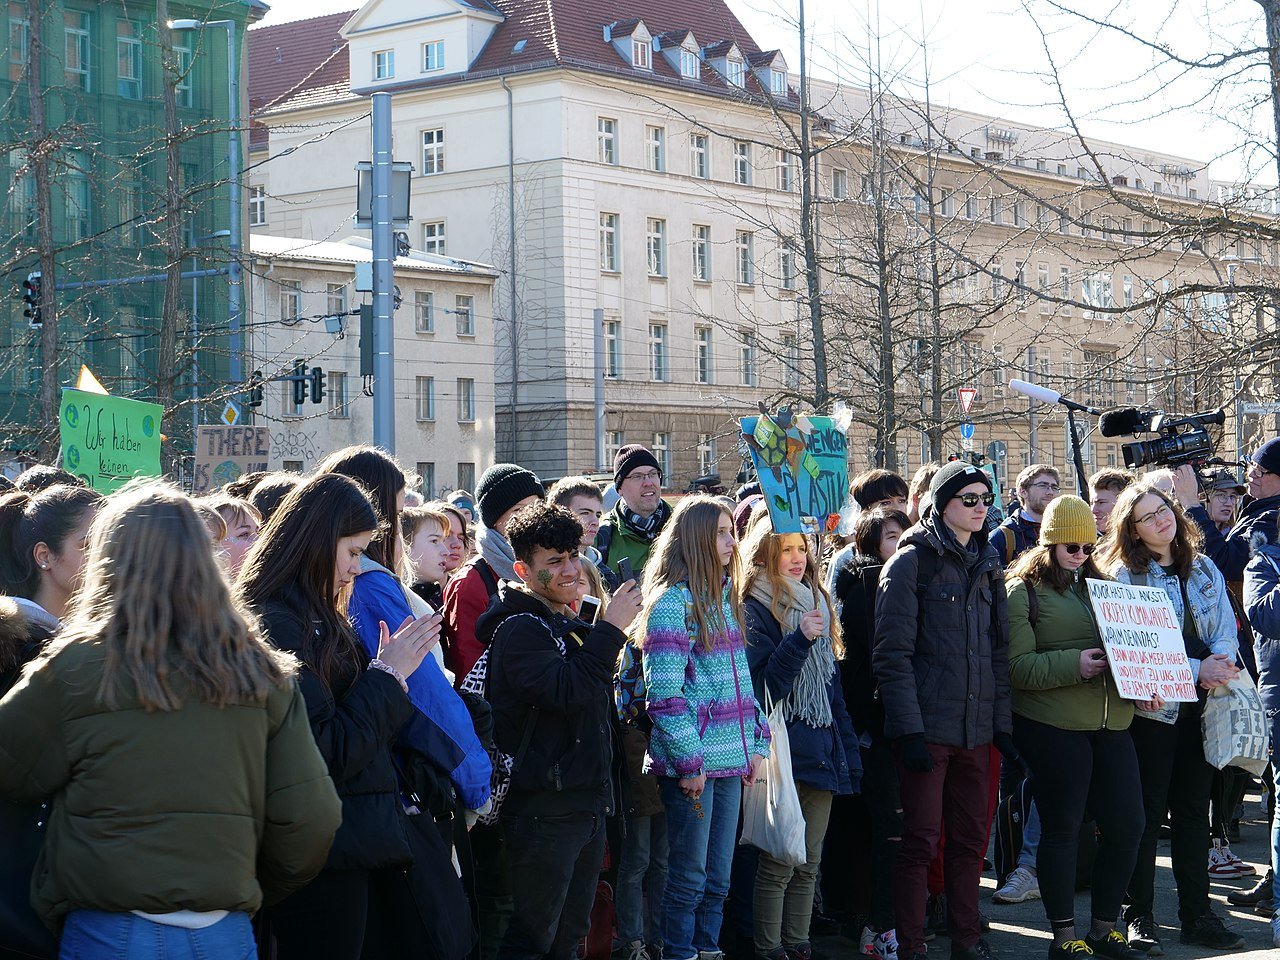 FridaysForFuture protest Berlin 22-02-2019 05.jpg